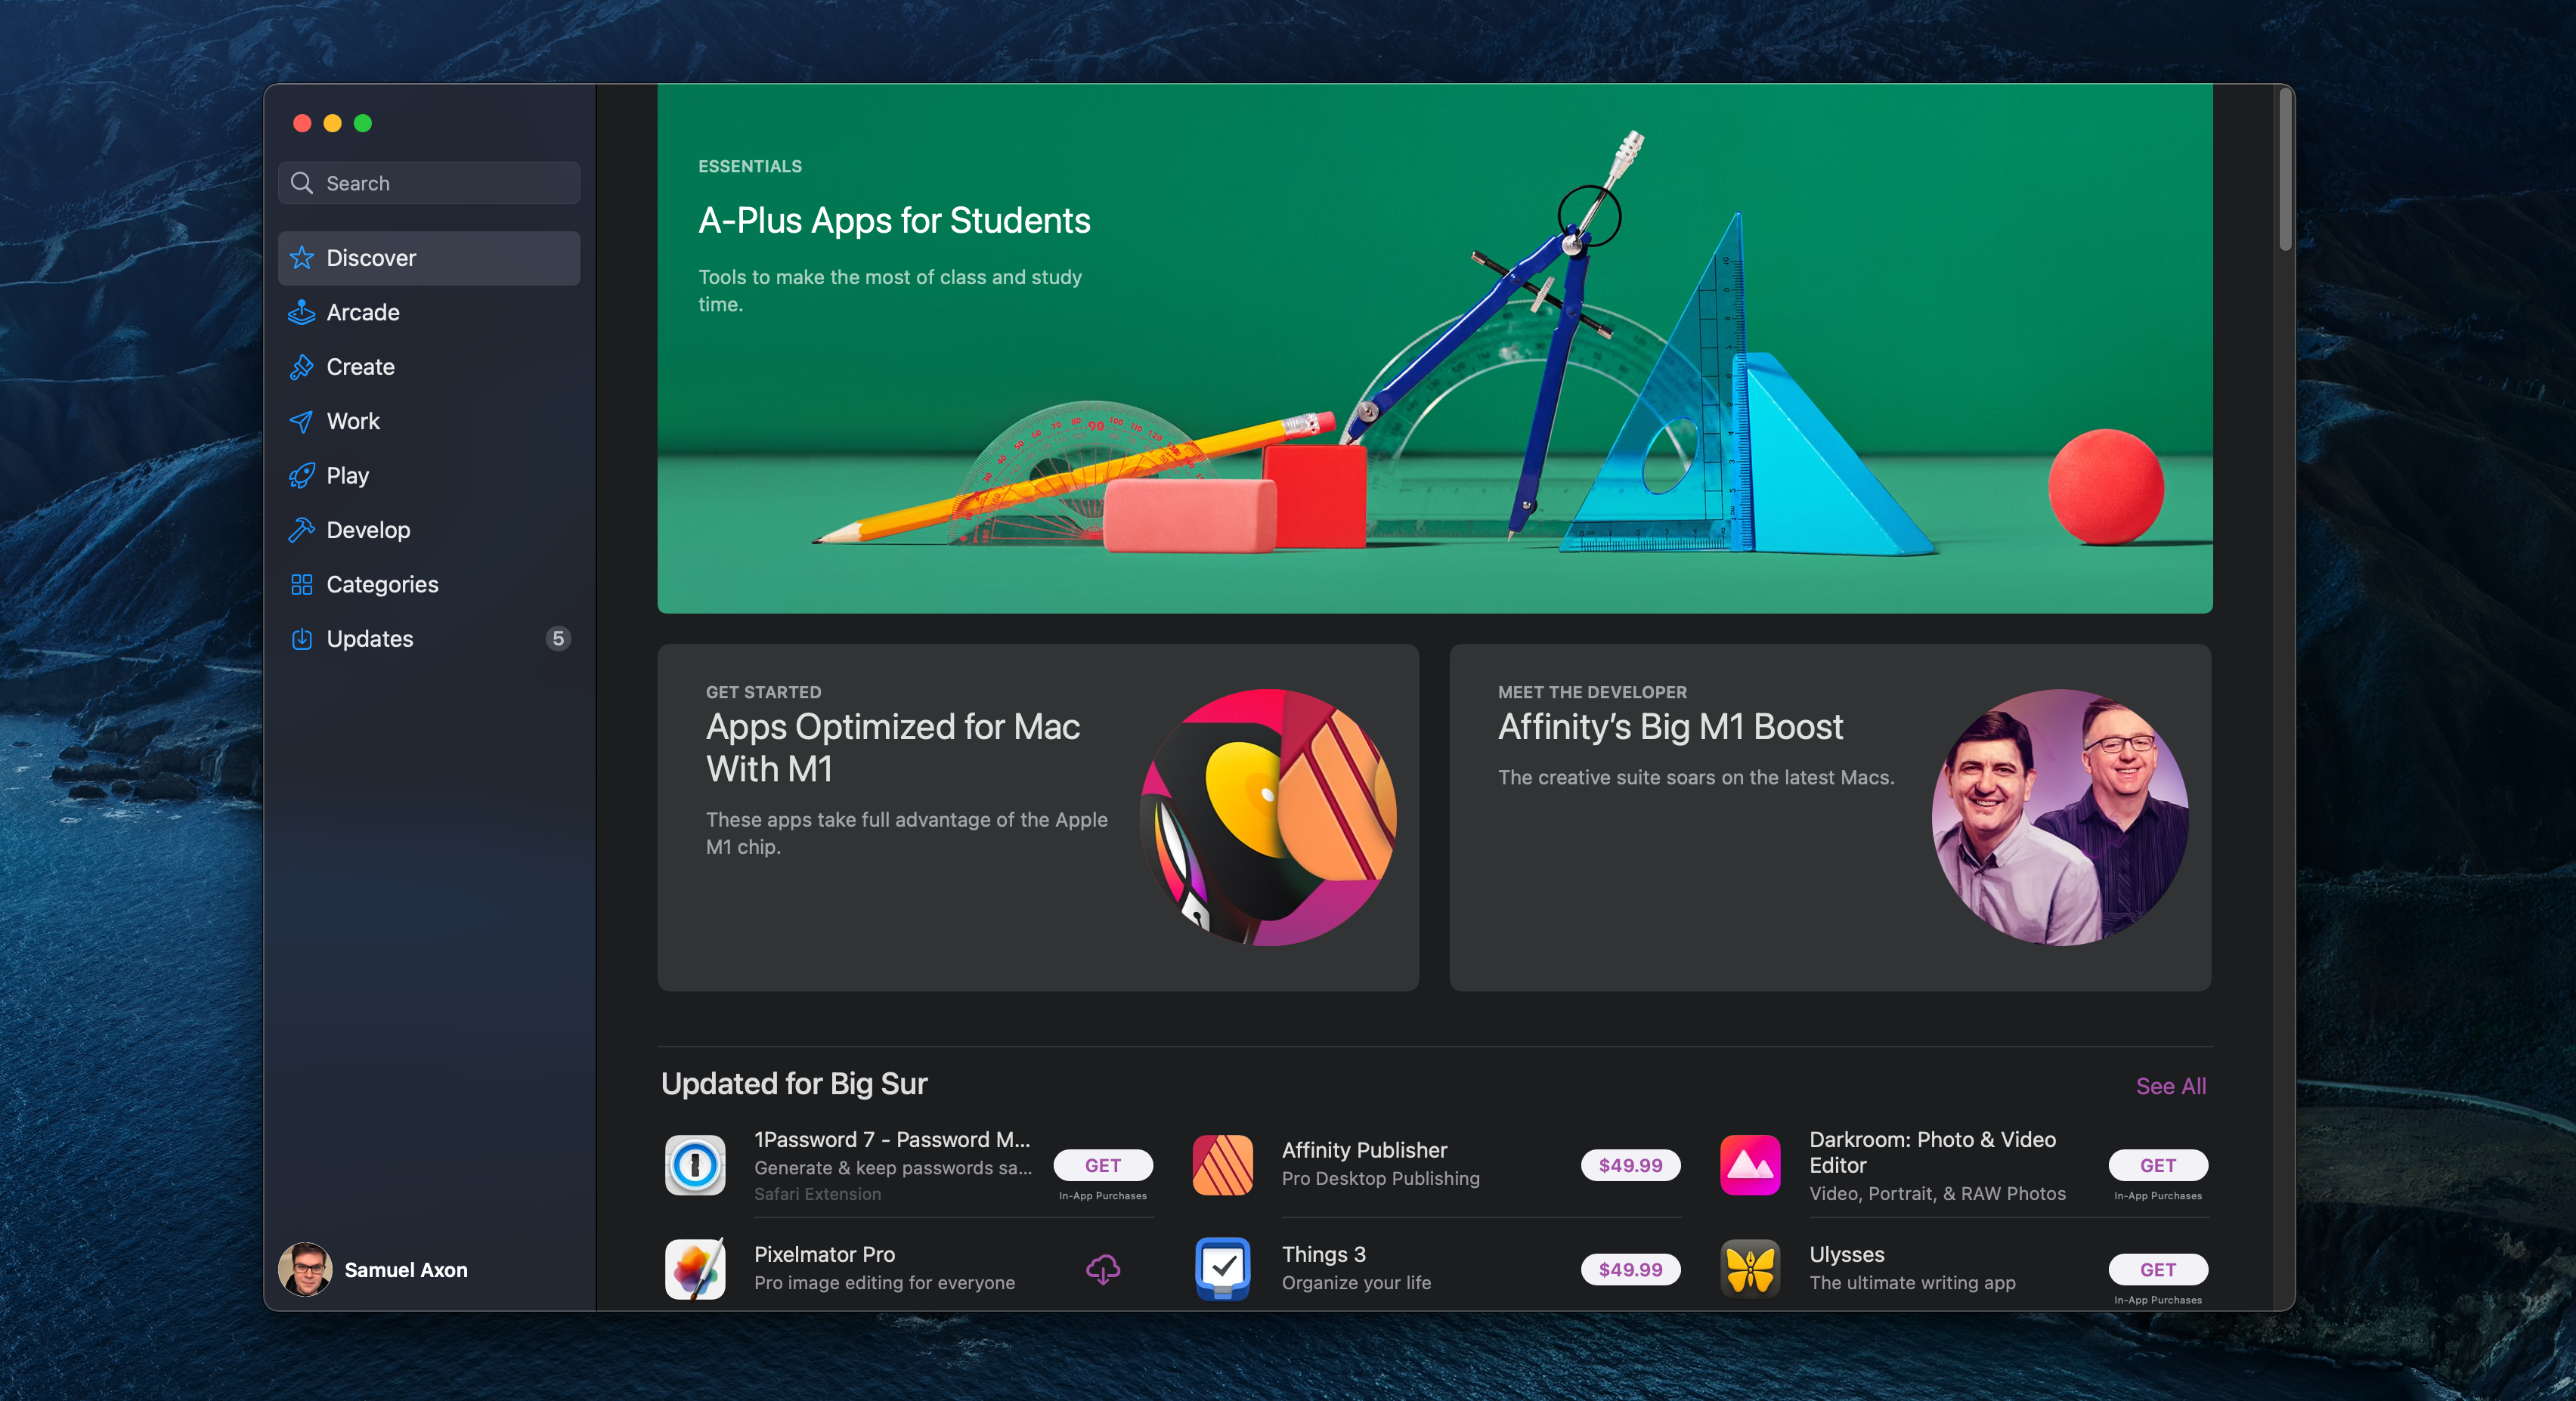 App Store Software For Mac